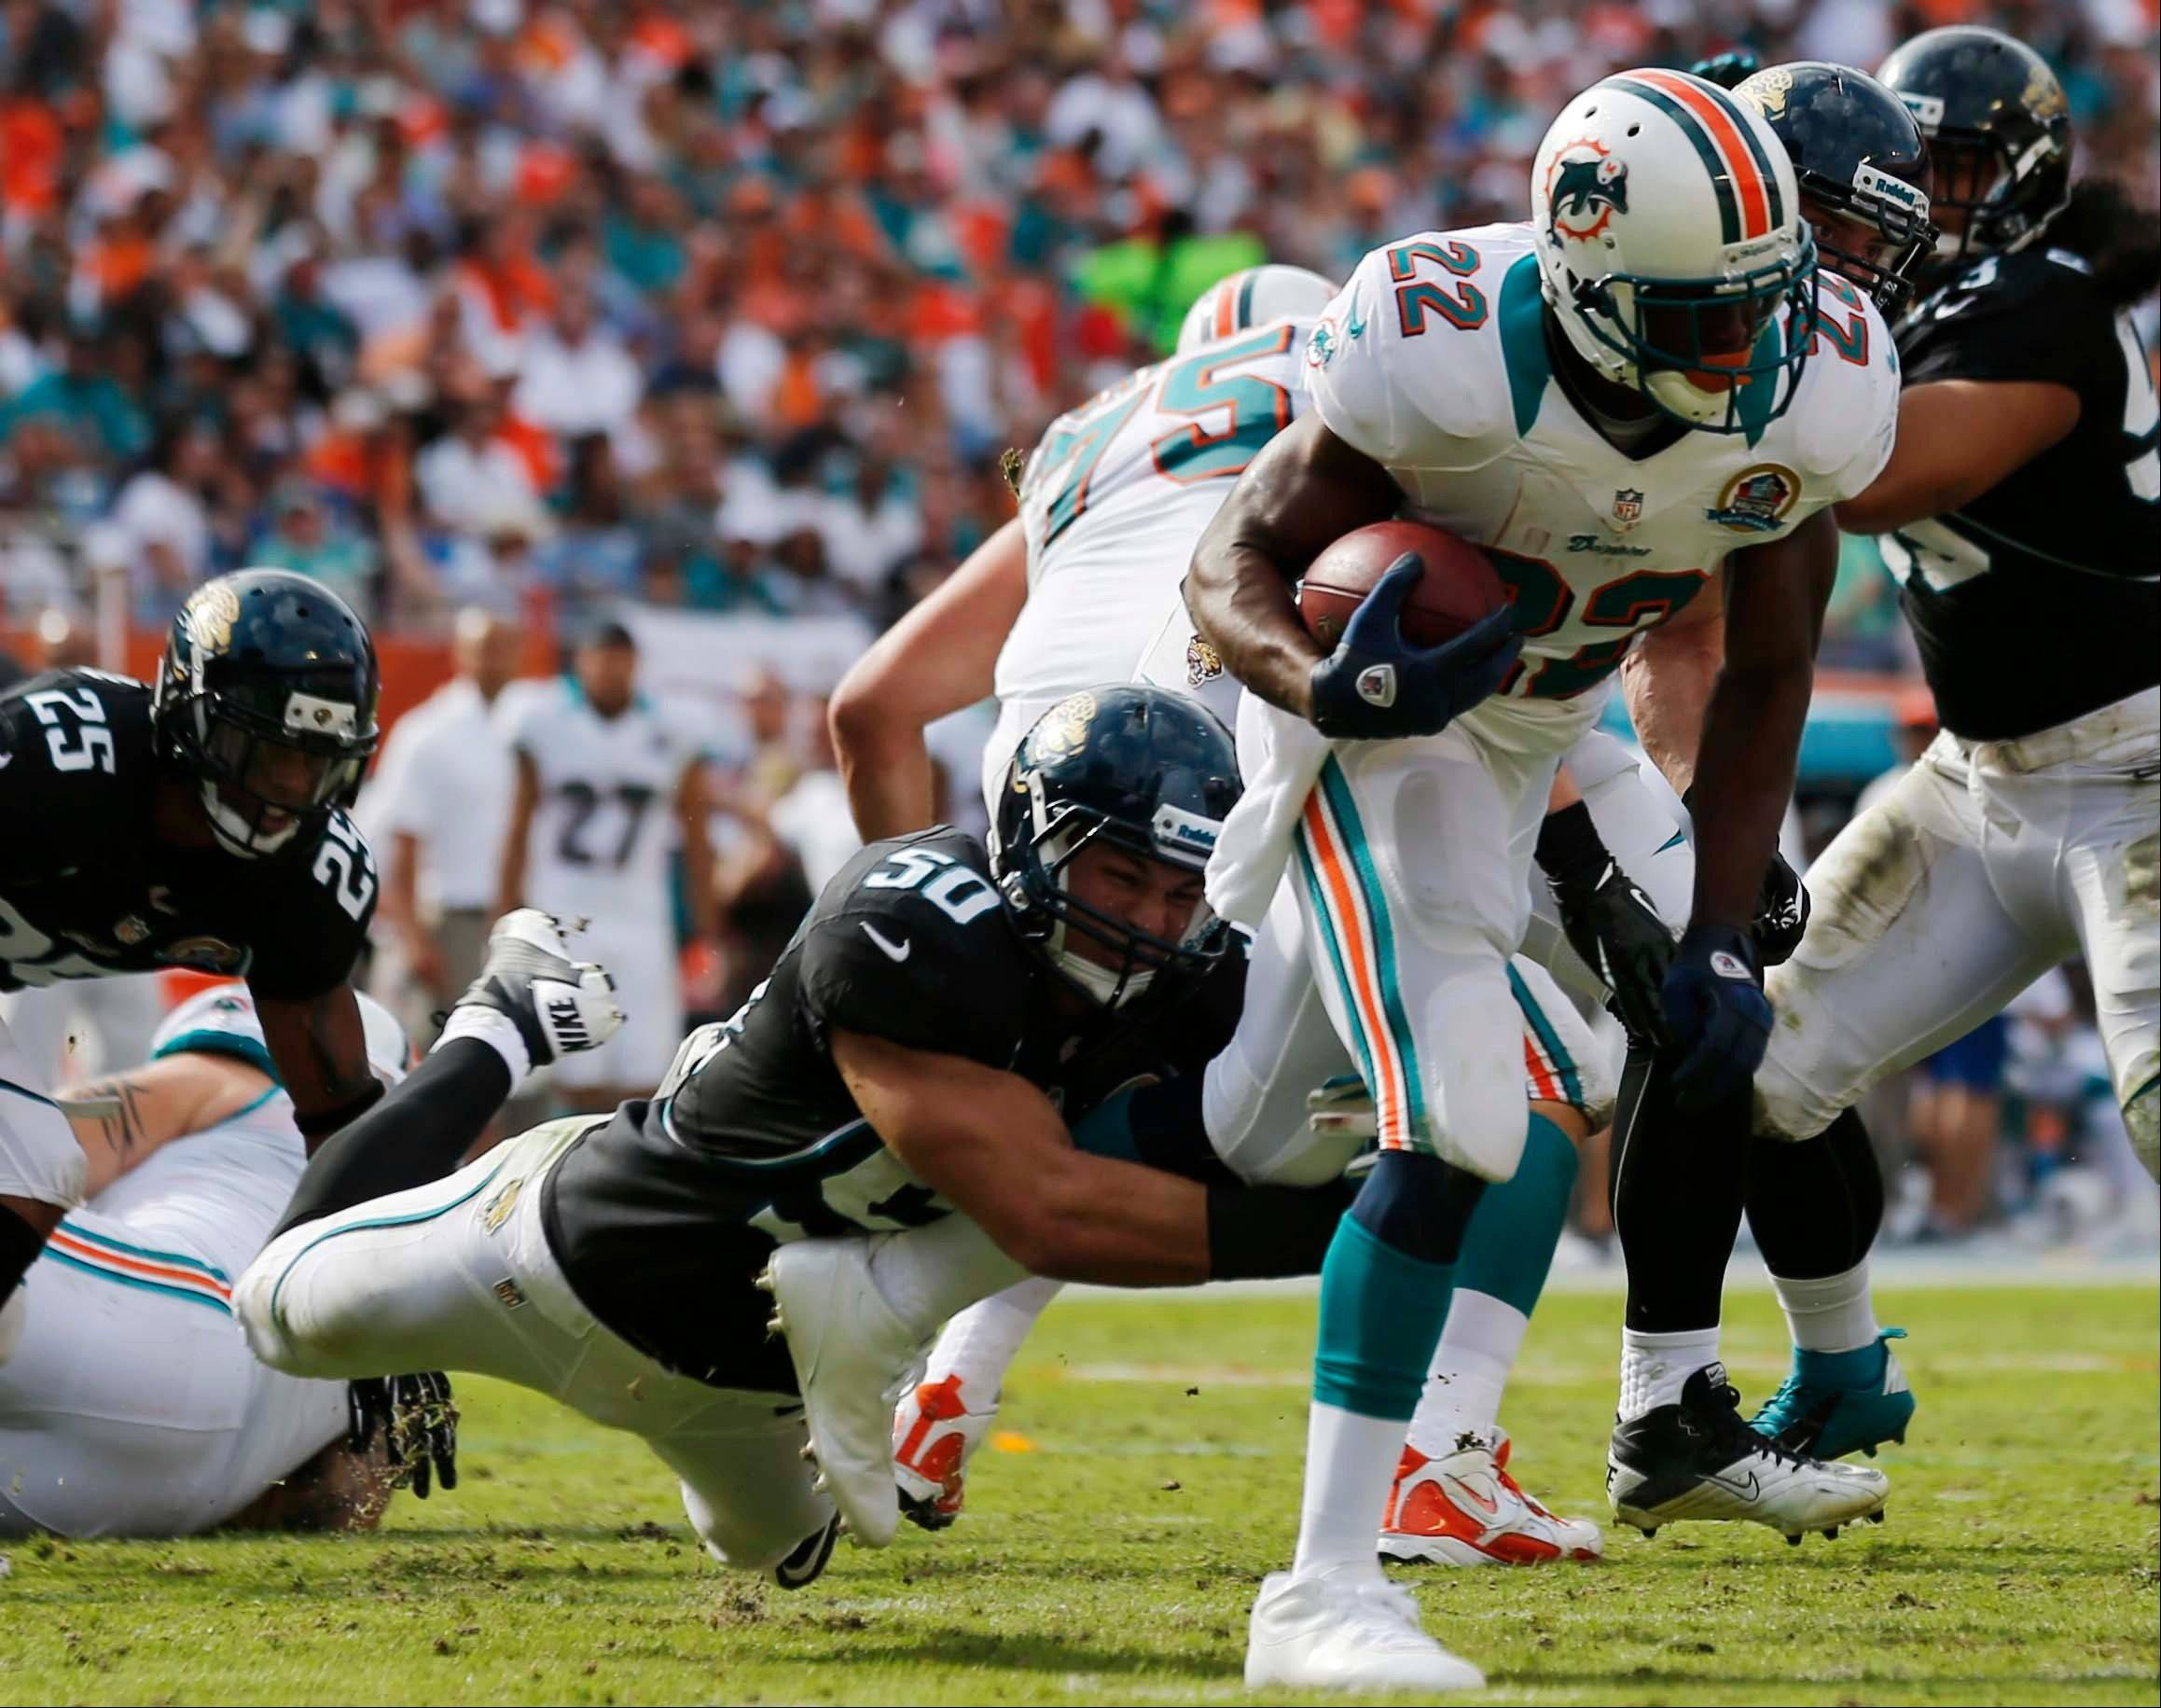 Miami Dolphins running back Reggie Bush (22) runs as Jacksonville Jaguars outside linebacker Russell Allen (50) holds on to his leg during the first half of an NFL football game on Sunday, Dec. 16, 2012, in Miami.